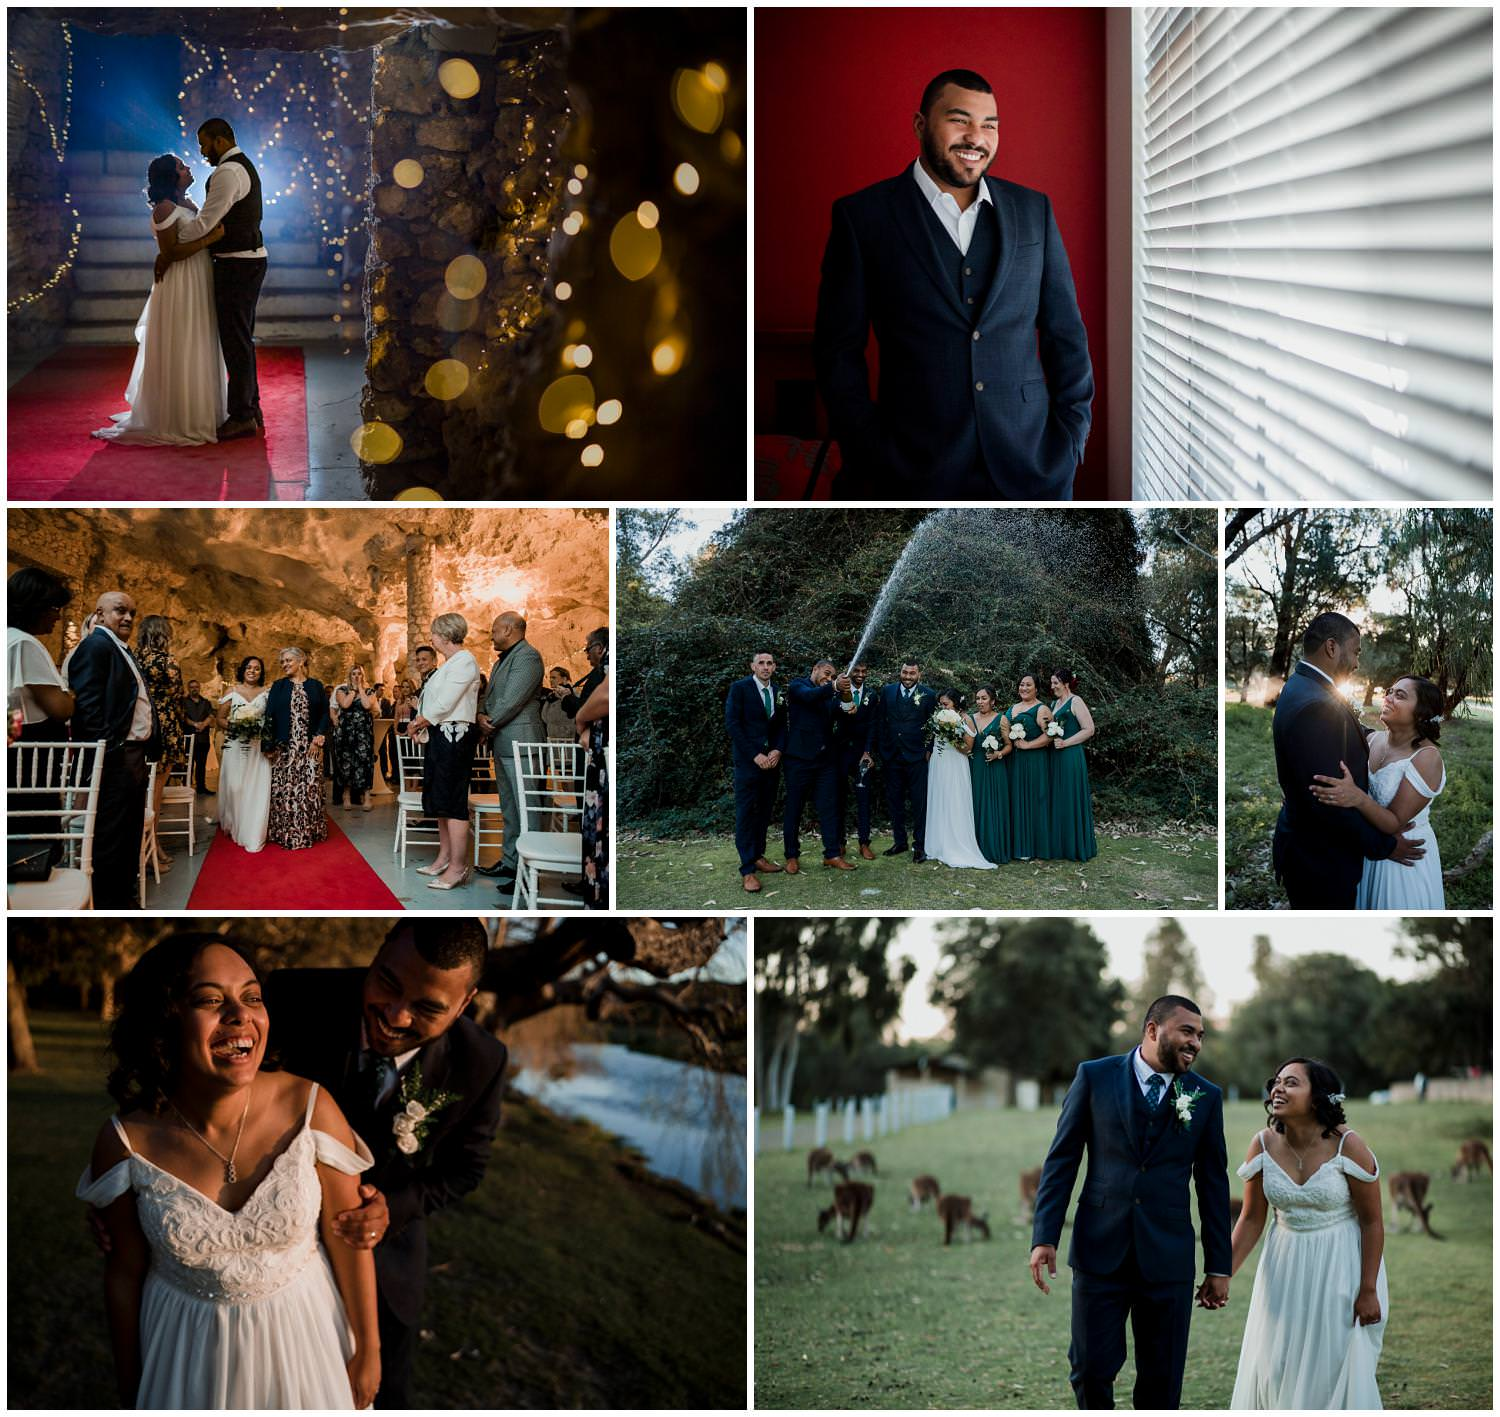 Bec + David - Yancheap National Park Wedding